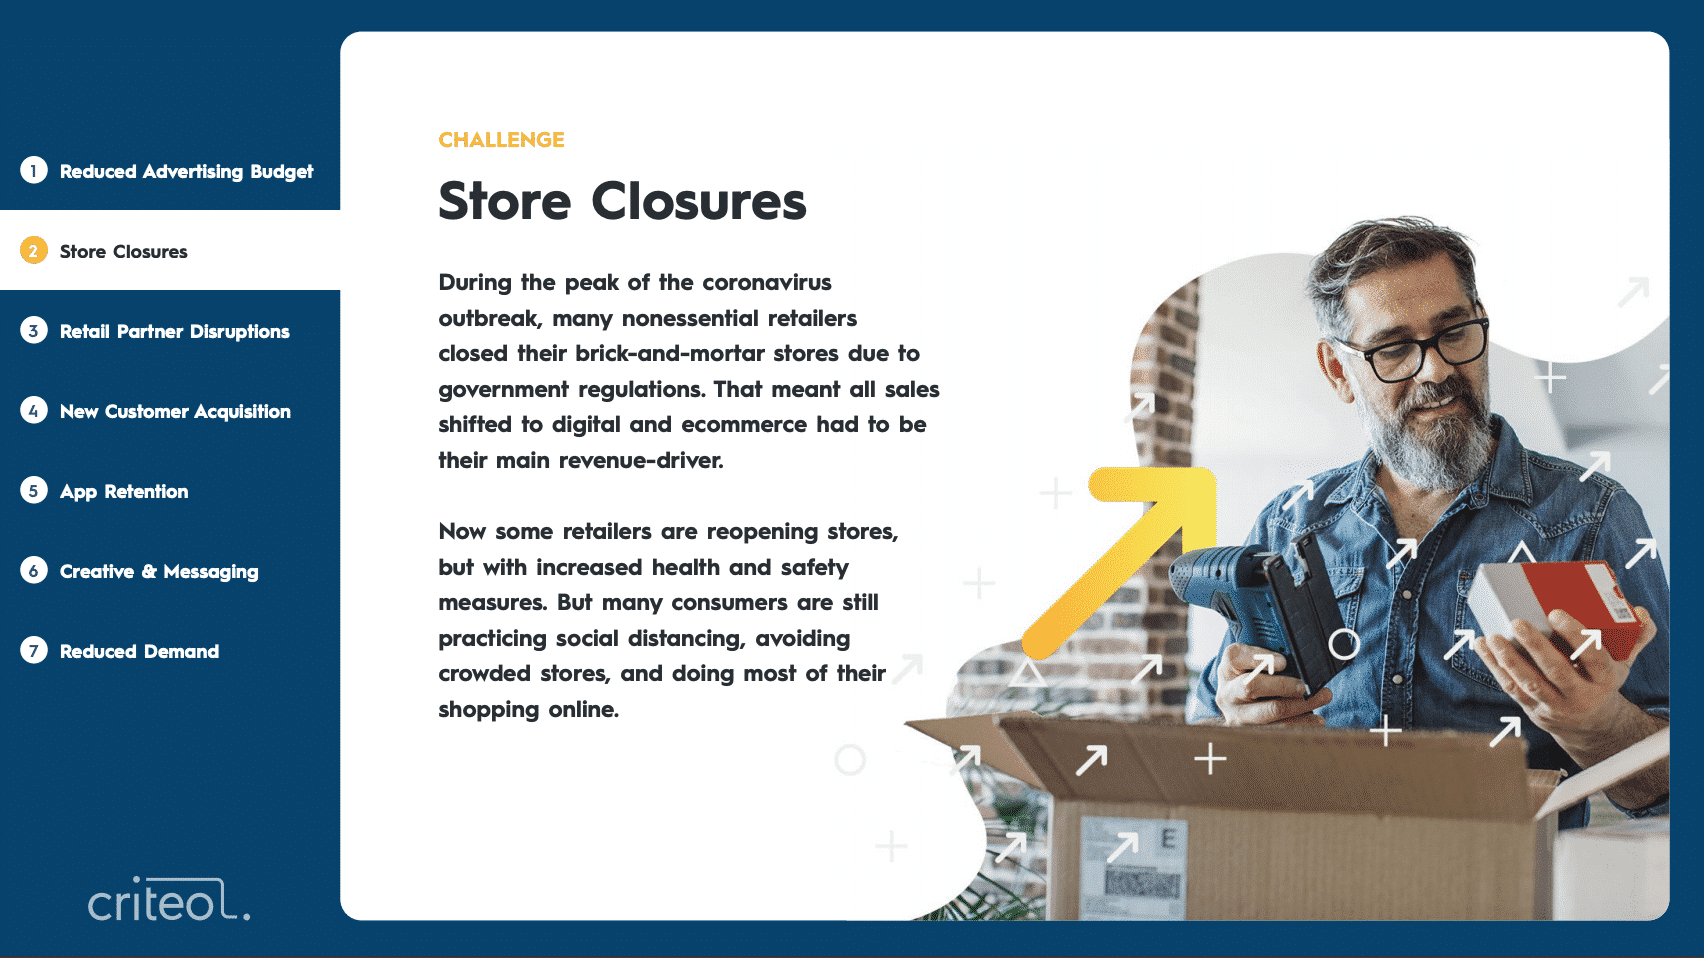 Challenge: Store Closures. During the peak of the coronavirus outbreak, many nonessential retailers closed their brick-and-mortar stores due to government regulations. That meant all sales shifted to digital and ecommerce had to be their main revenue-driver. Now some retailers are reopening stores, but with increased health and safety measures. But many consumers are still practicing social distancing, avoiding crowded stores, and doing most of their shopping online.